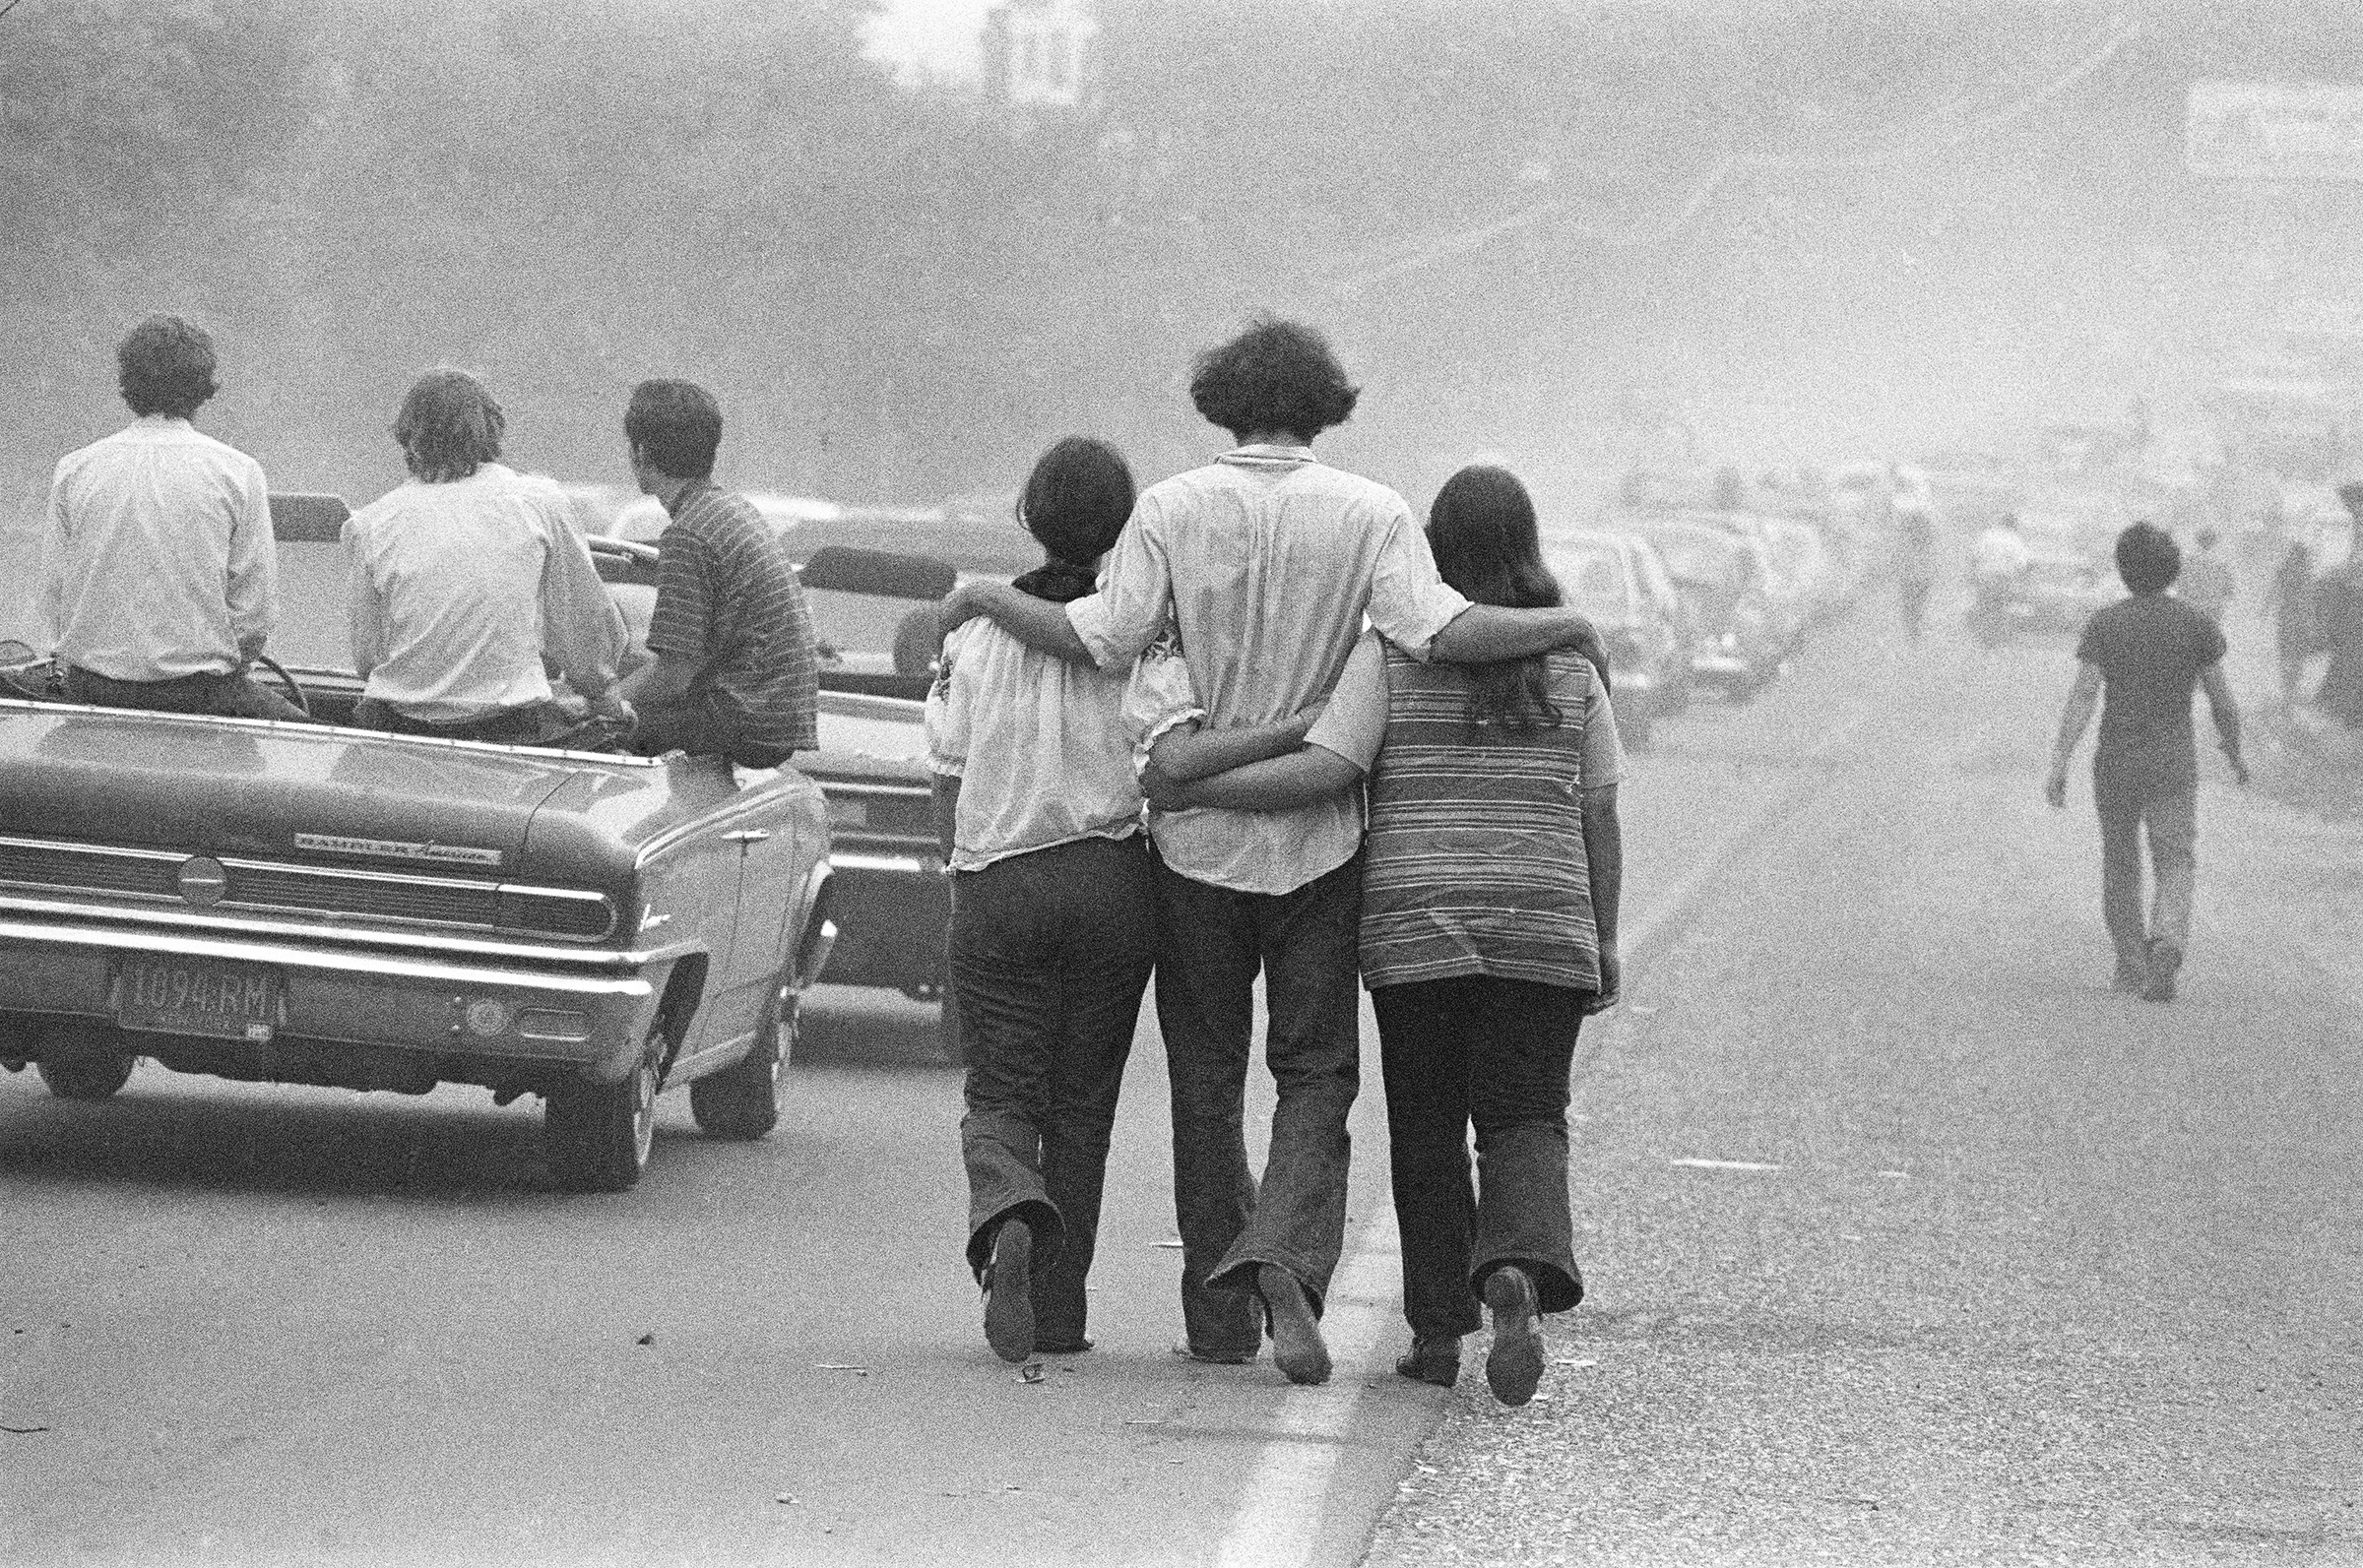 Festival goers on their way to Woodstock, in August 1969.